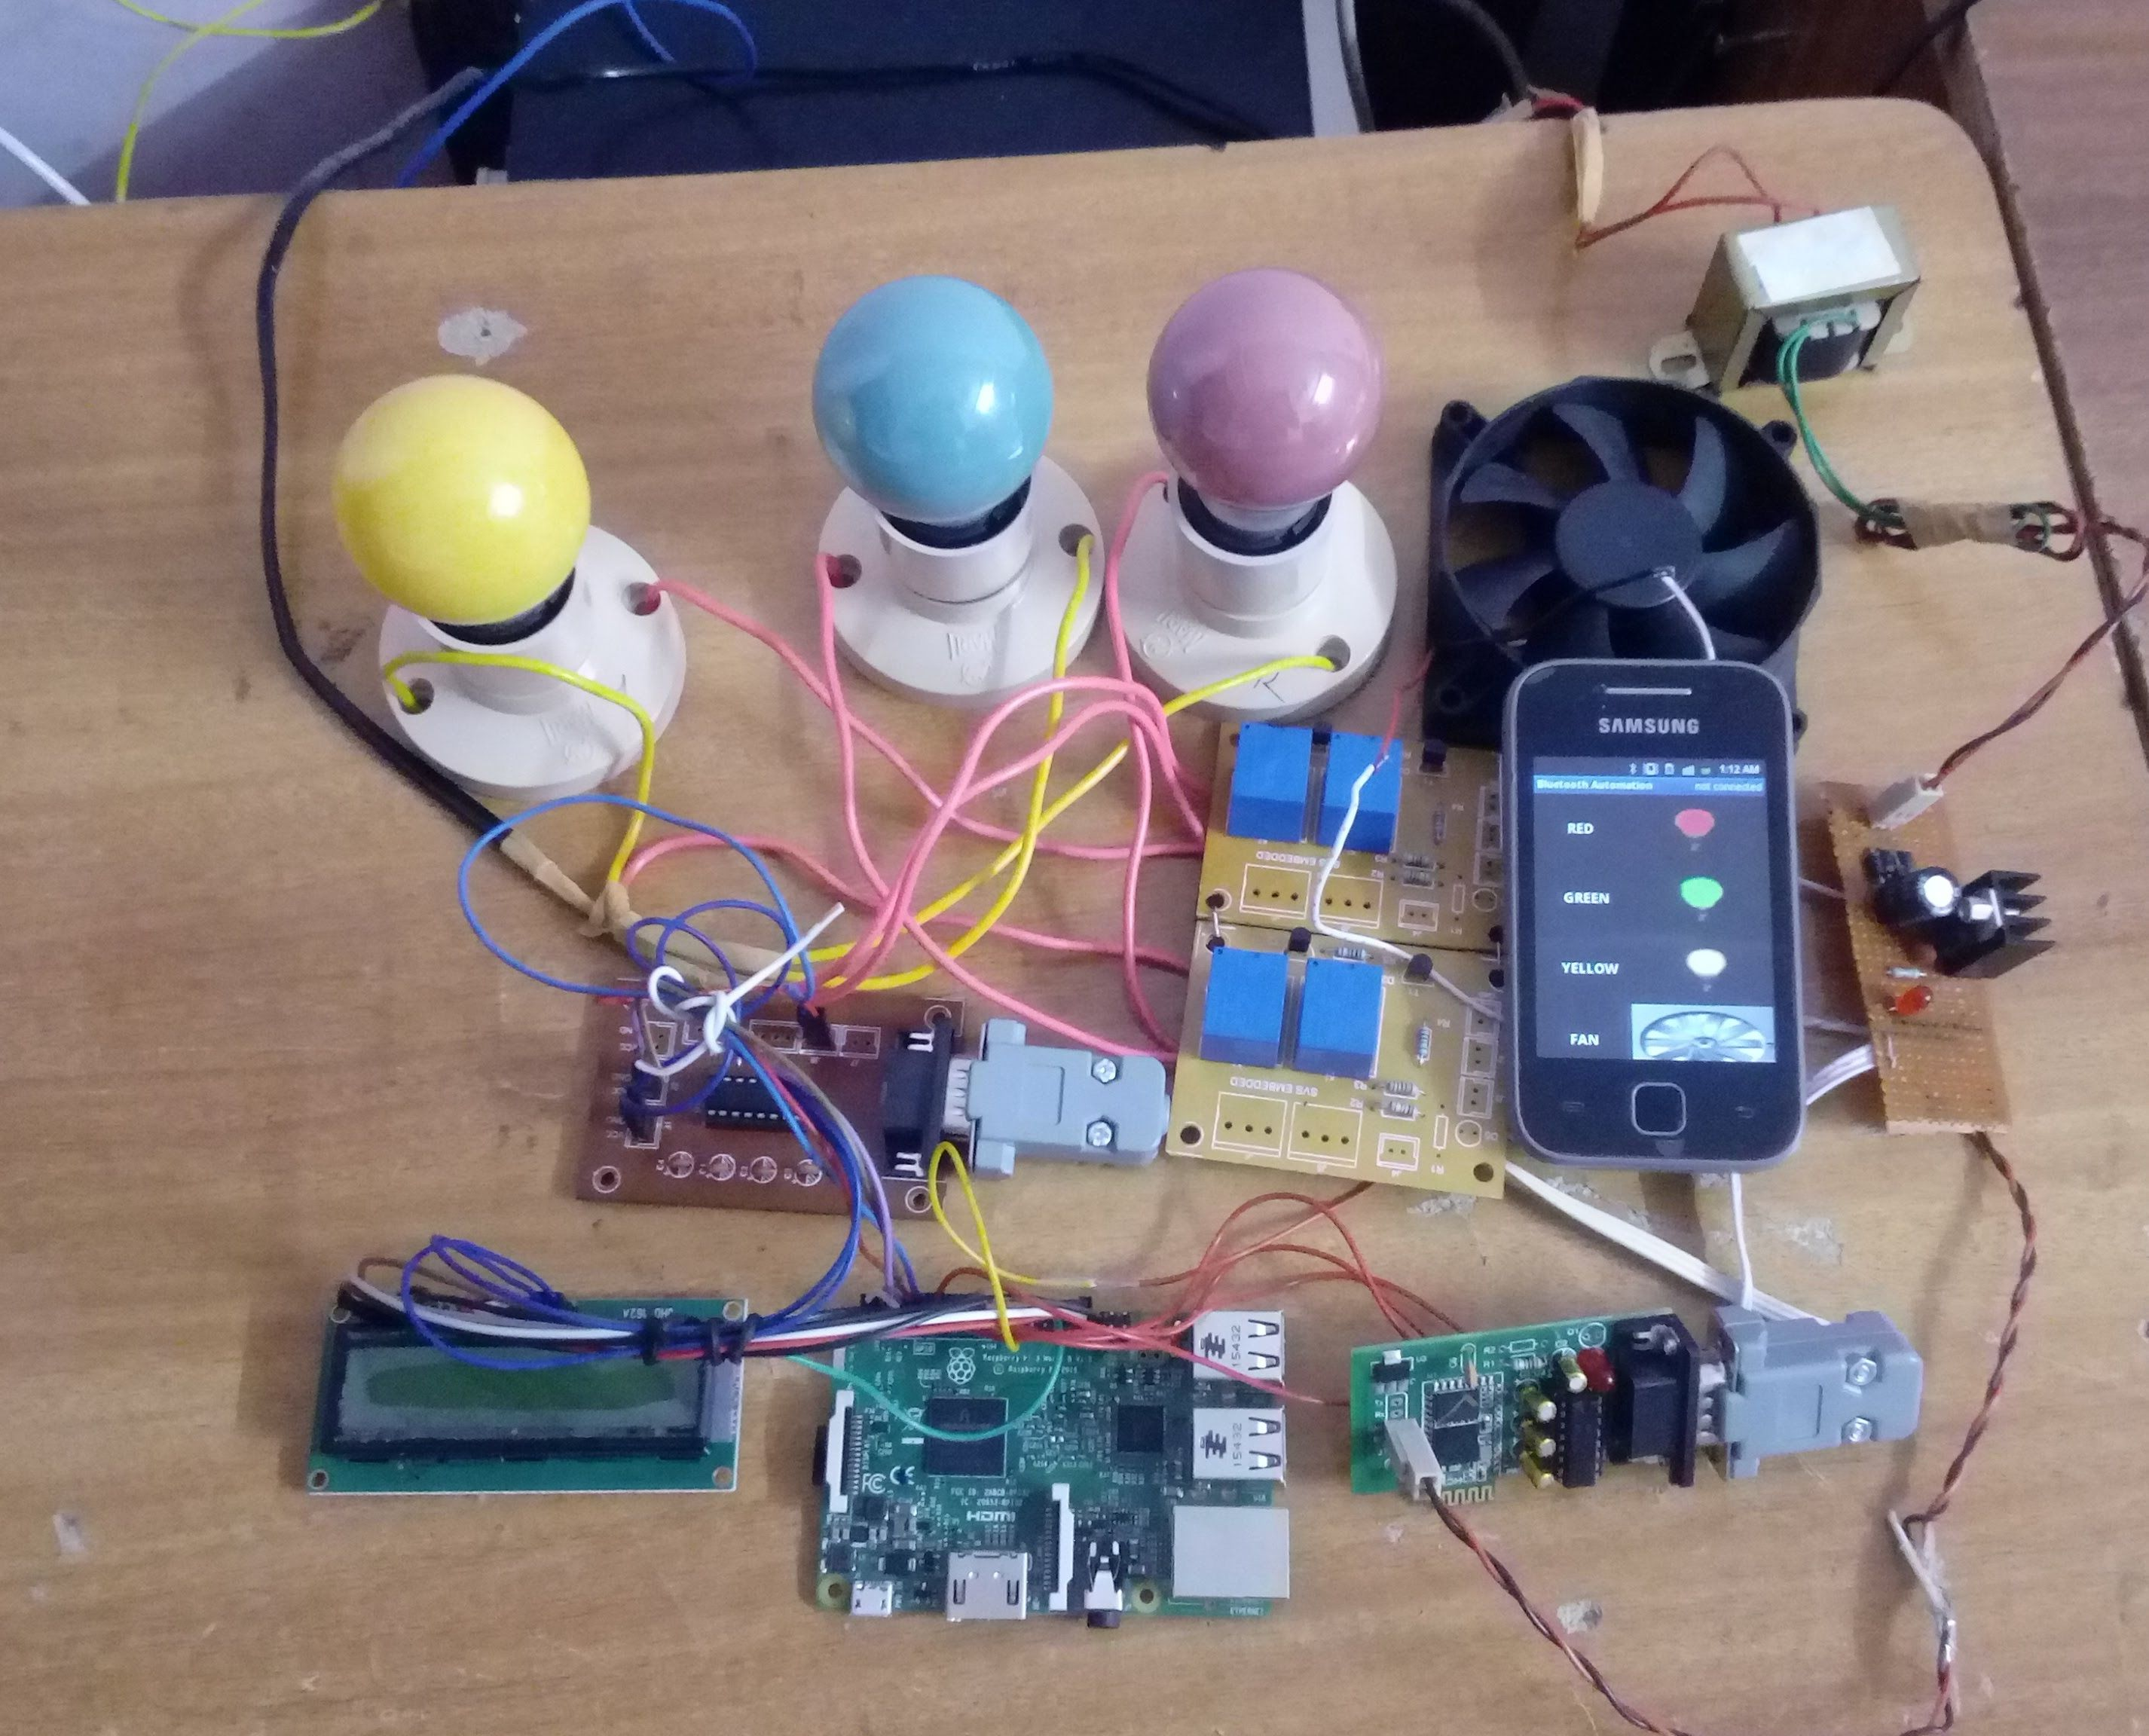 Raspberry Pi Based Home Automation Using Bluetooth Android Smart